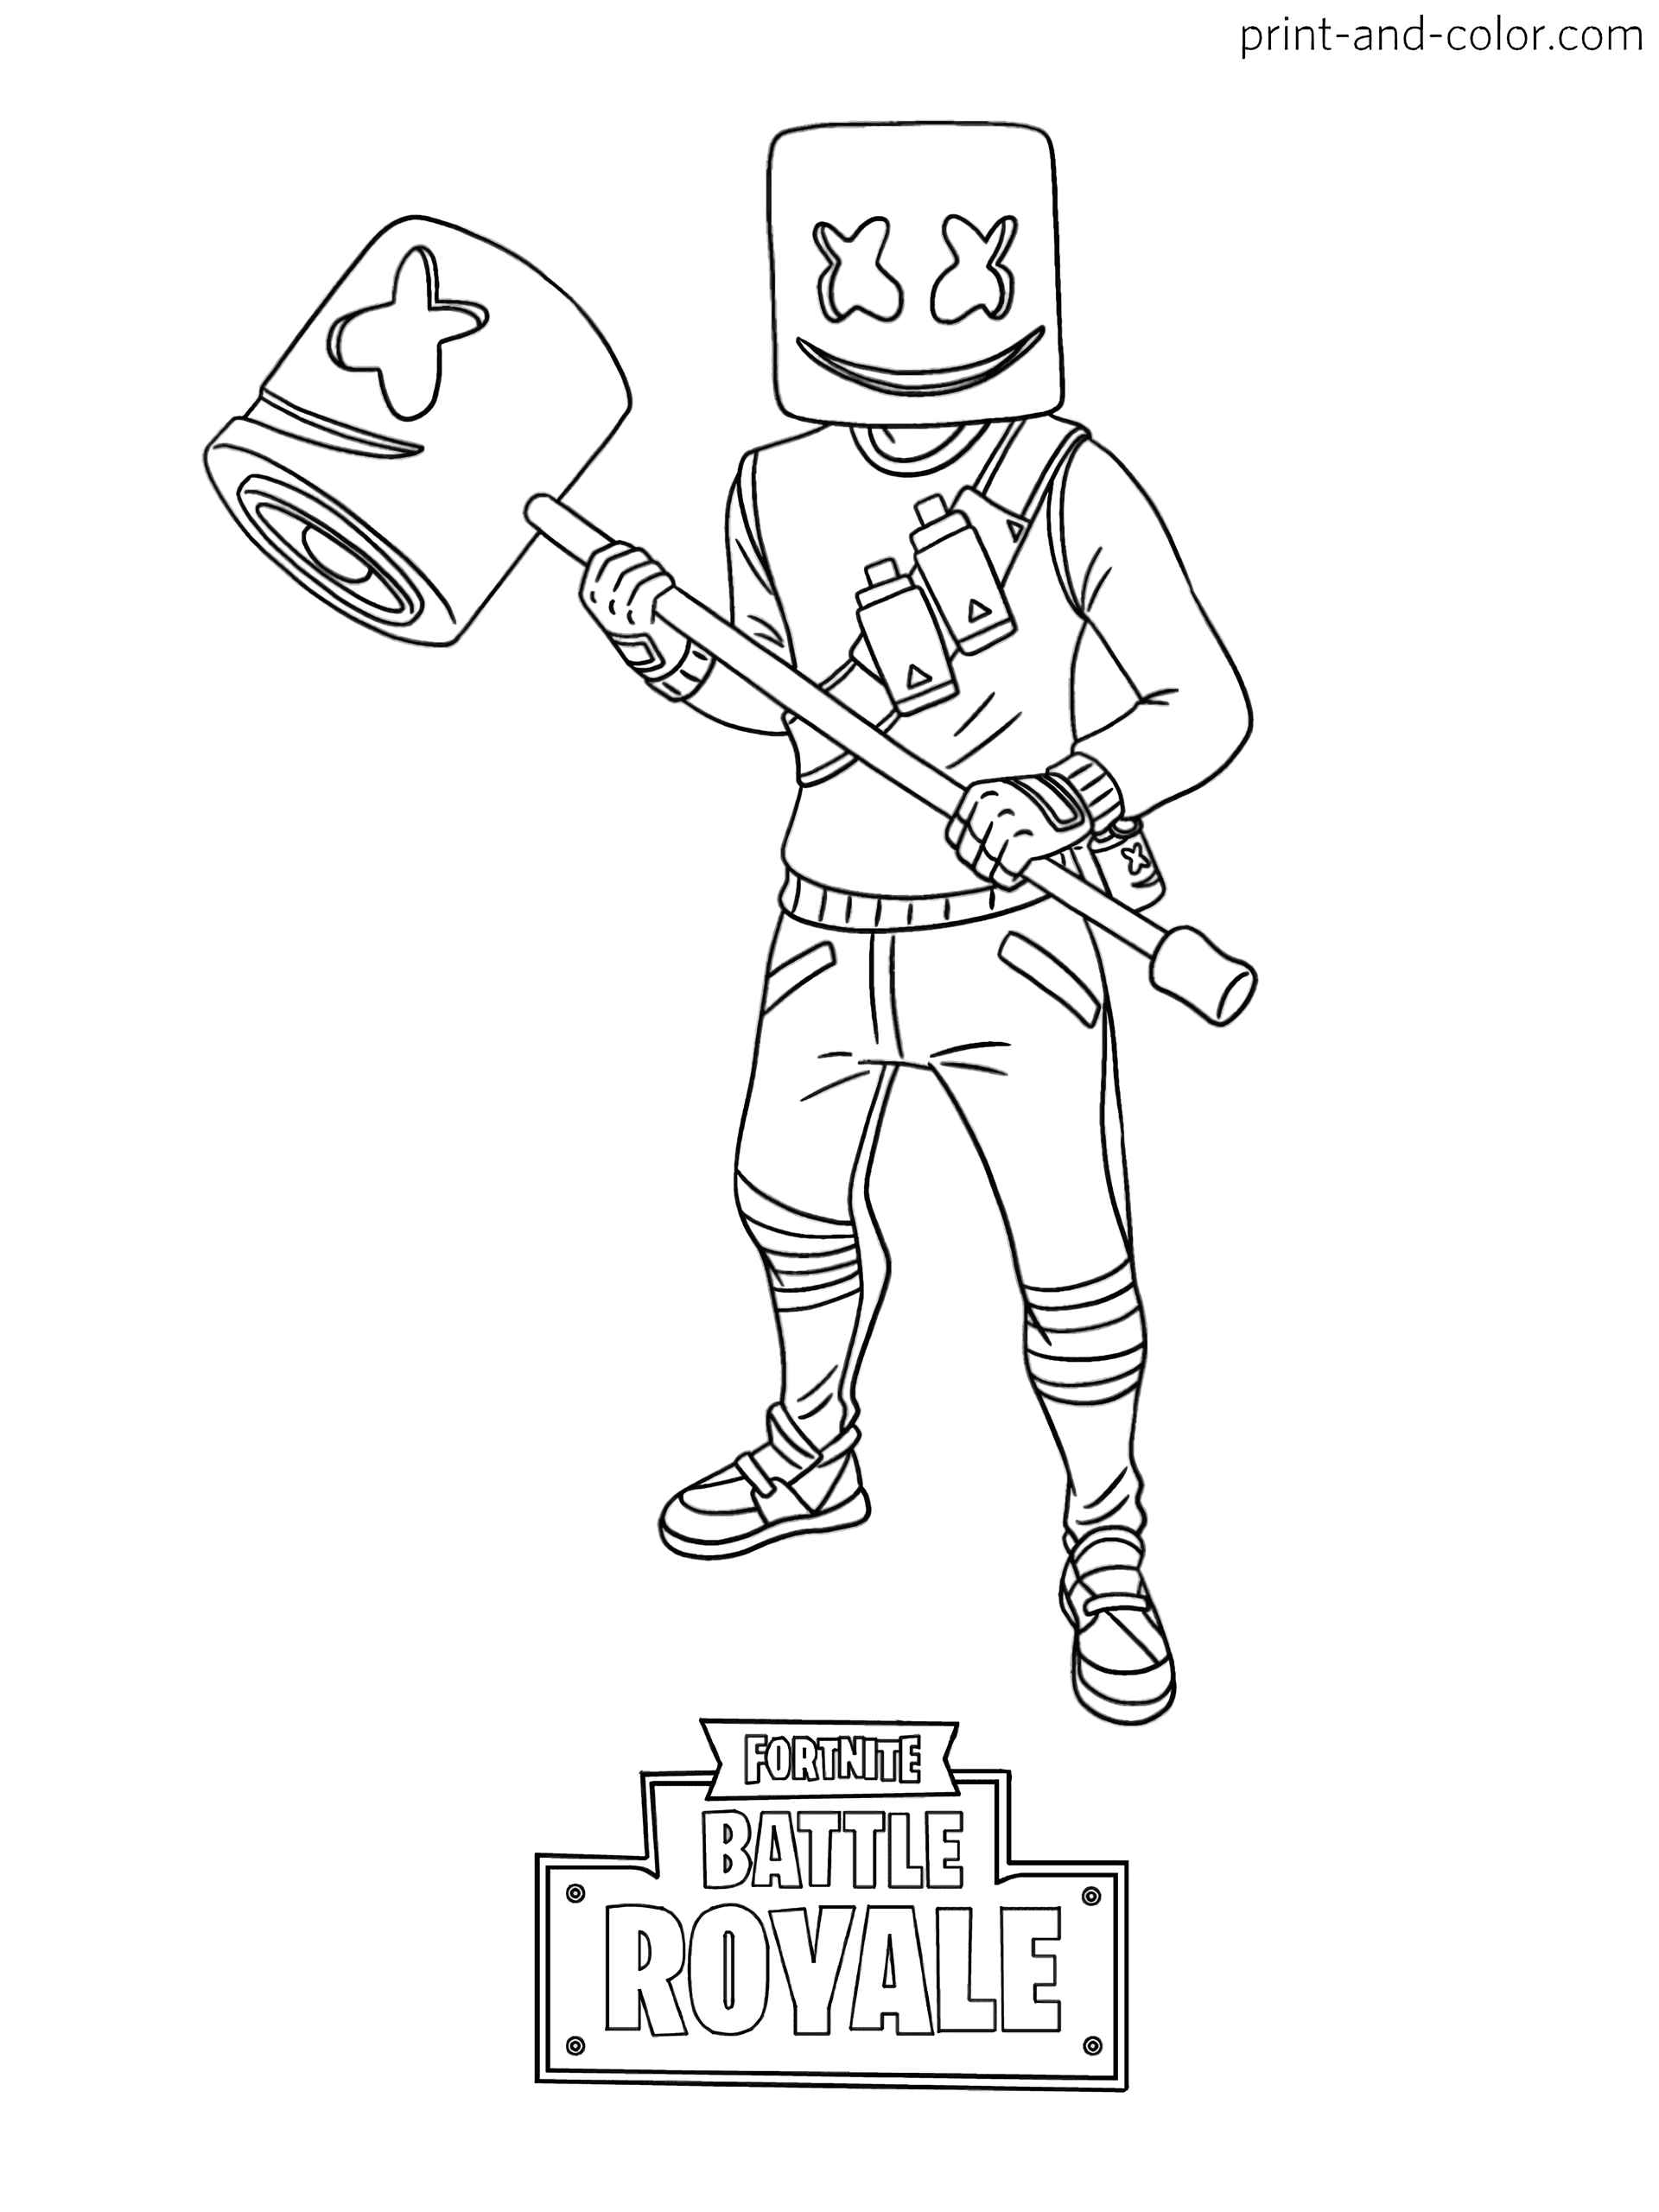 Coloring Page Of Marshmelllow With Wood Sledgehammer Skin From The Game Fortnite